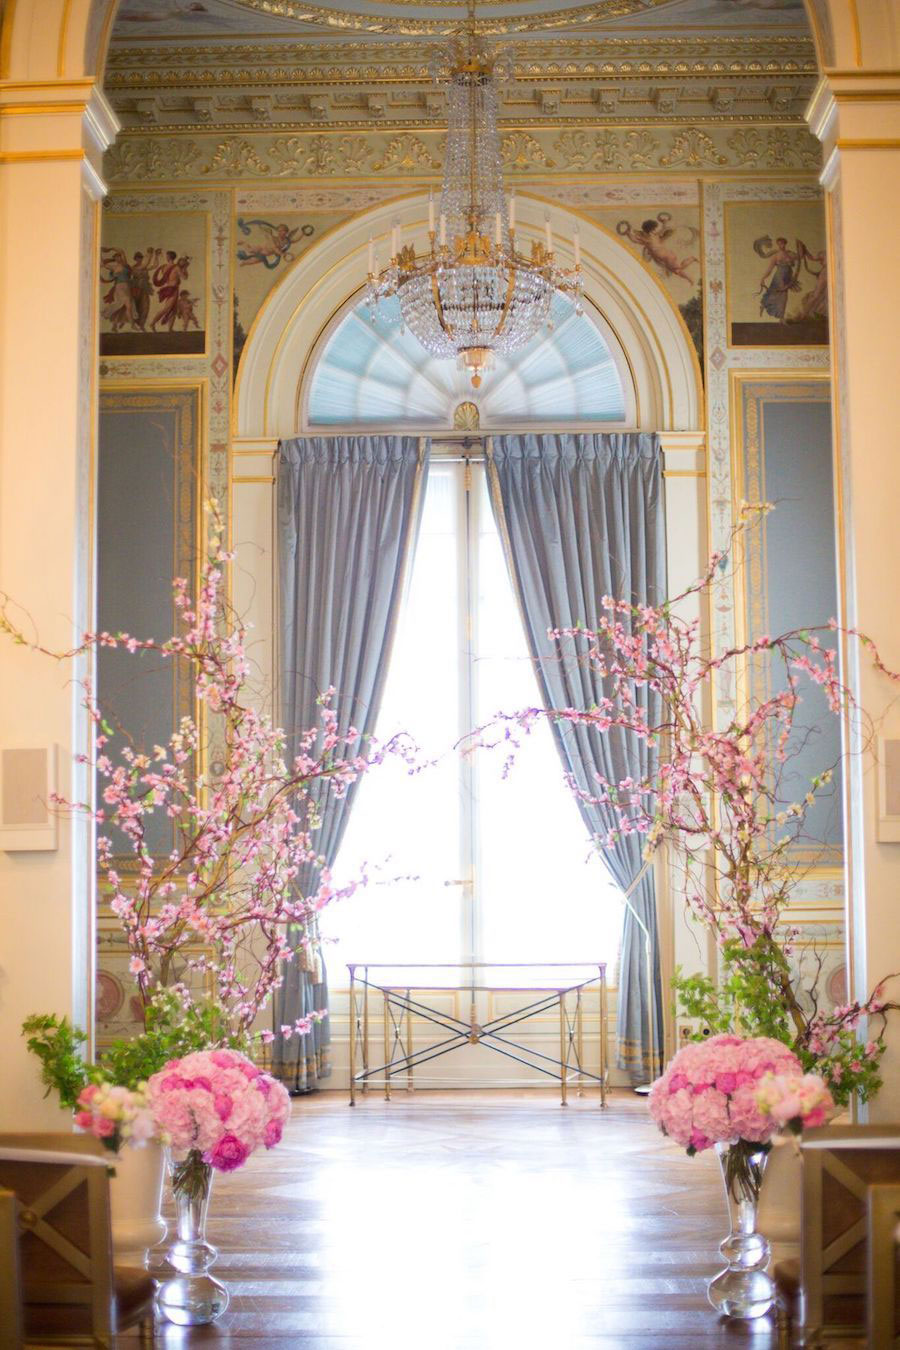 Parisian Pink & Gold Wedding With Pretty Cherry Blossom Arch0104